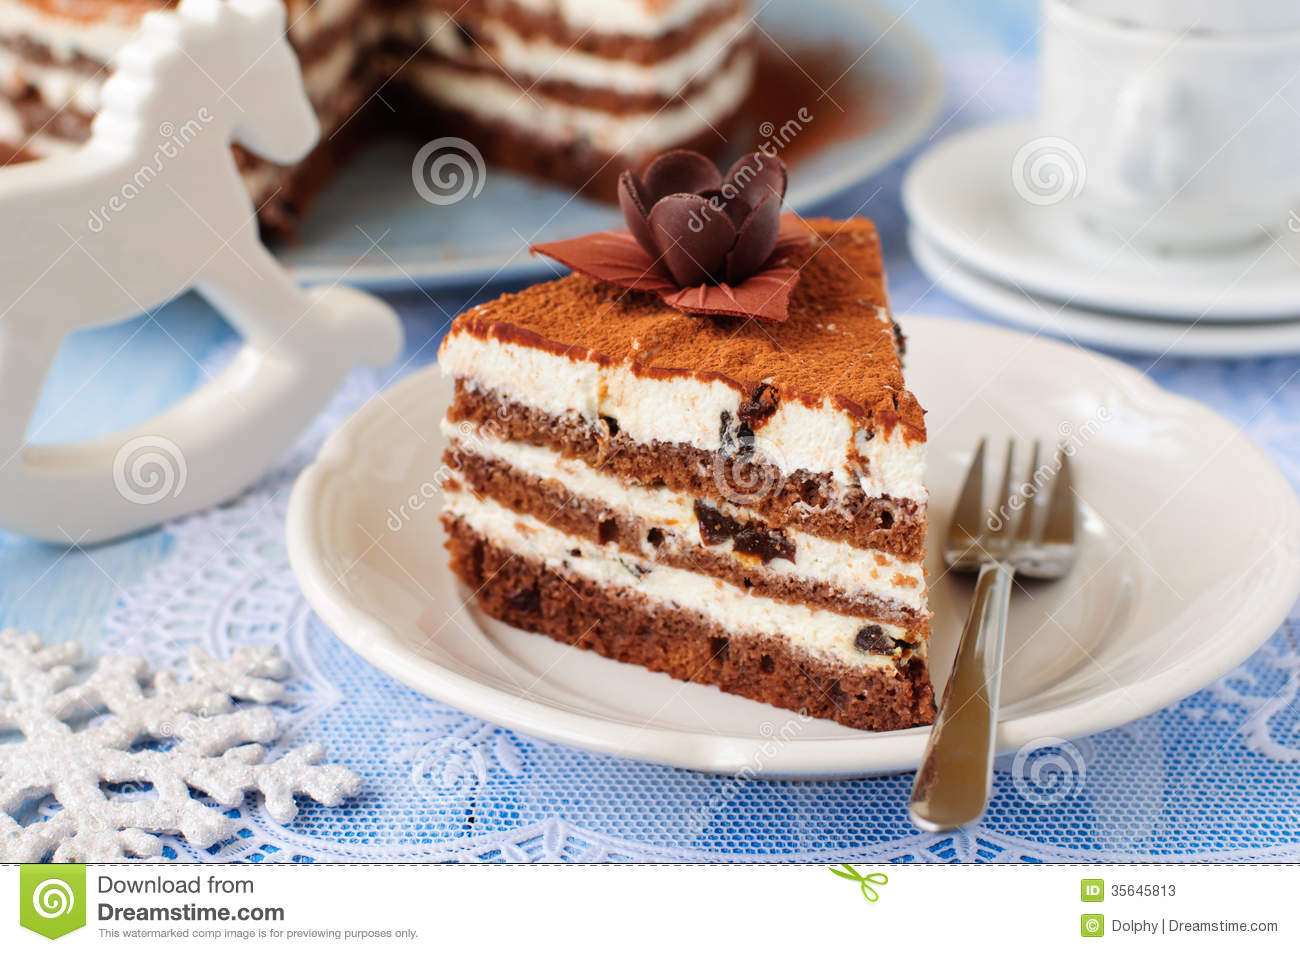 Calories In Chocolate Cake With Buttercream Icing